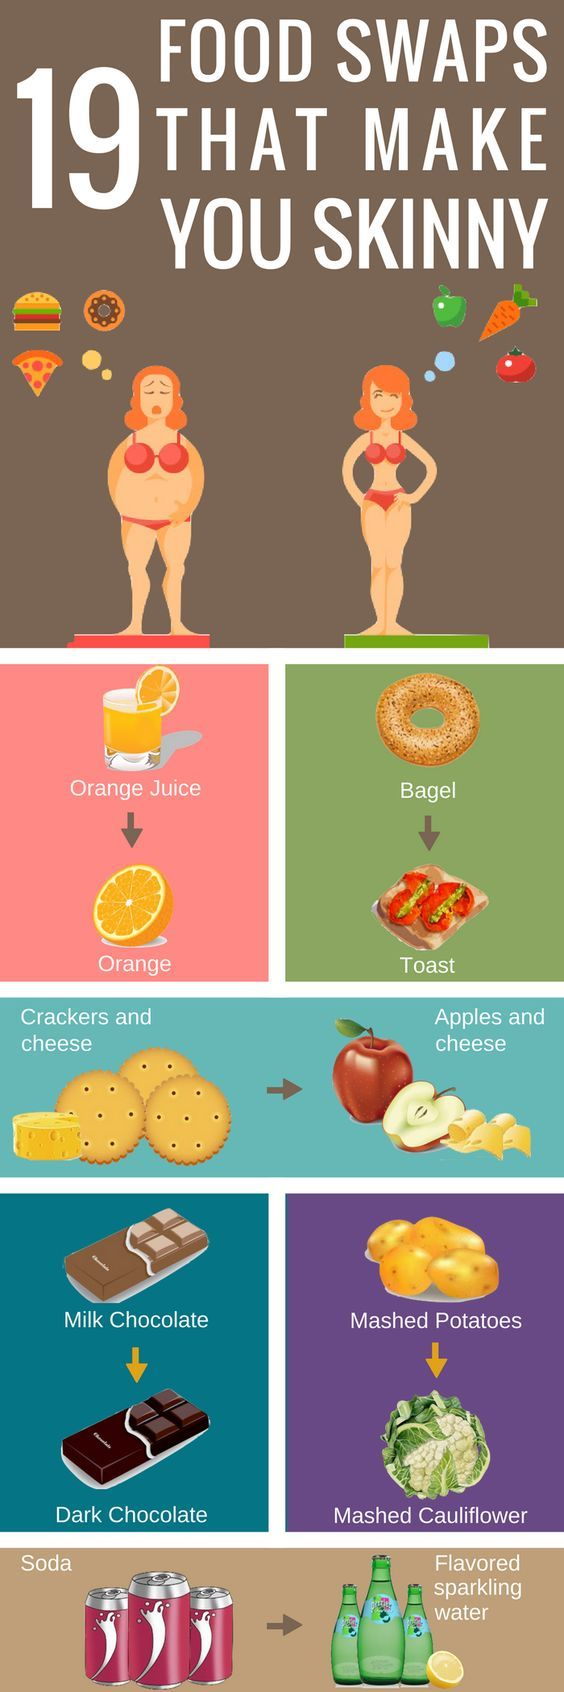 19 Food Swaps Thet Make You Skinny Eating Healthy Isn T Just For